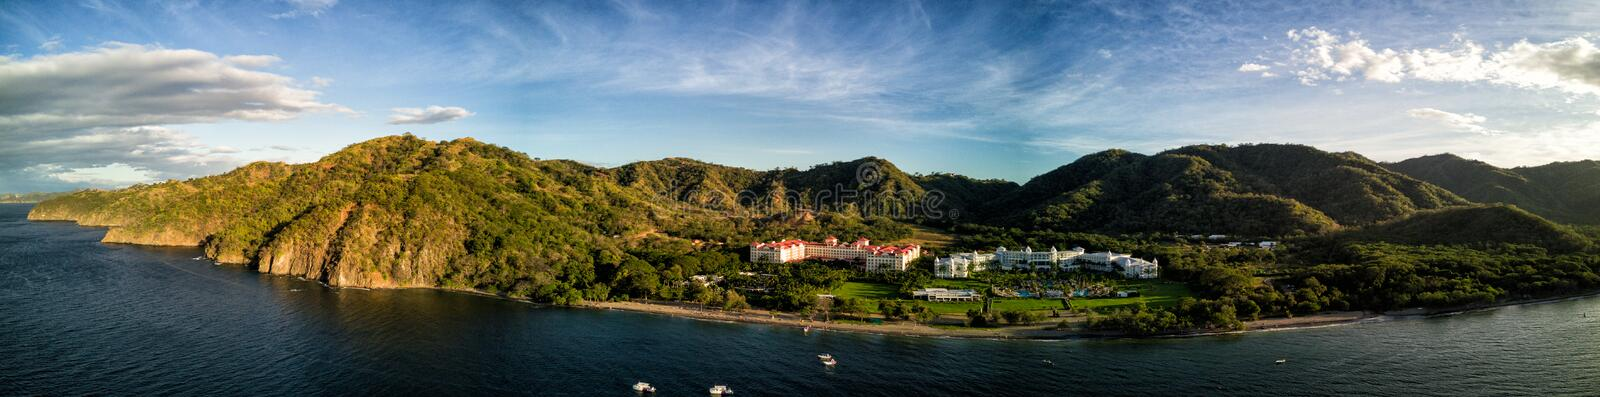 Aerial Drone Photo - Resort hotels along the Pacific coast of Costa Rica, surrounded by rugged mountains stock image